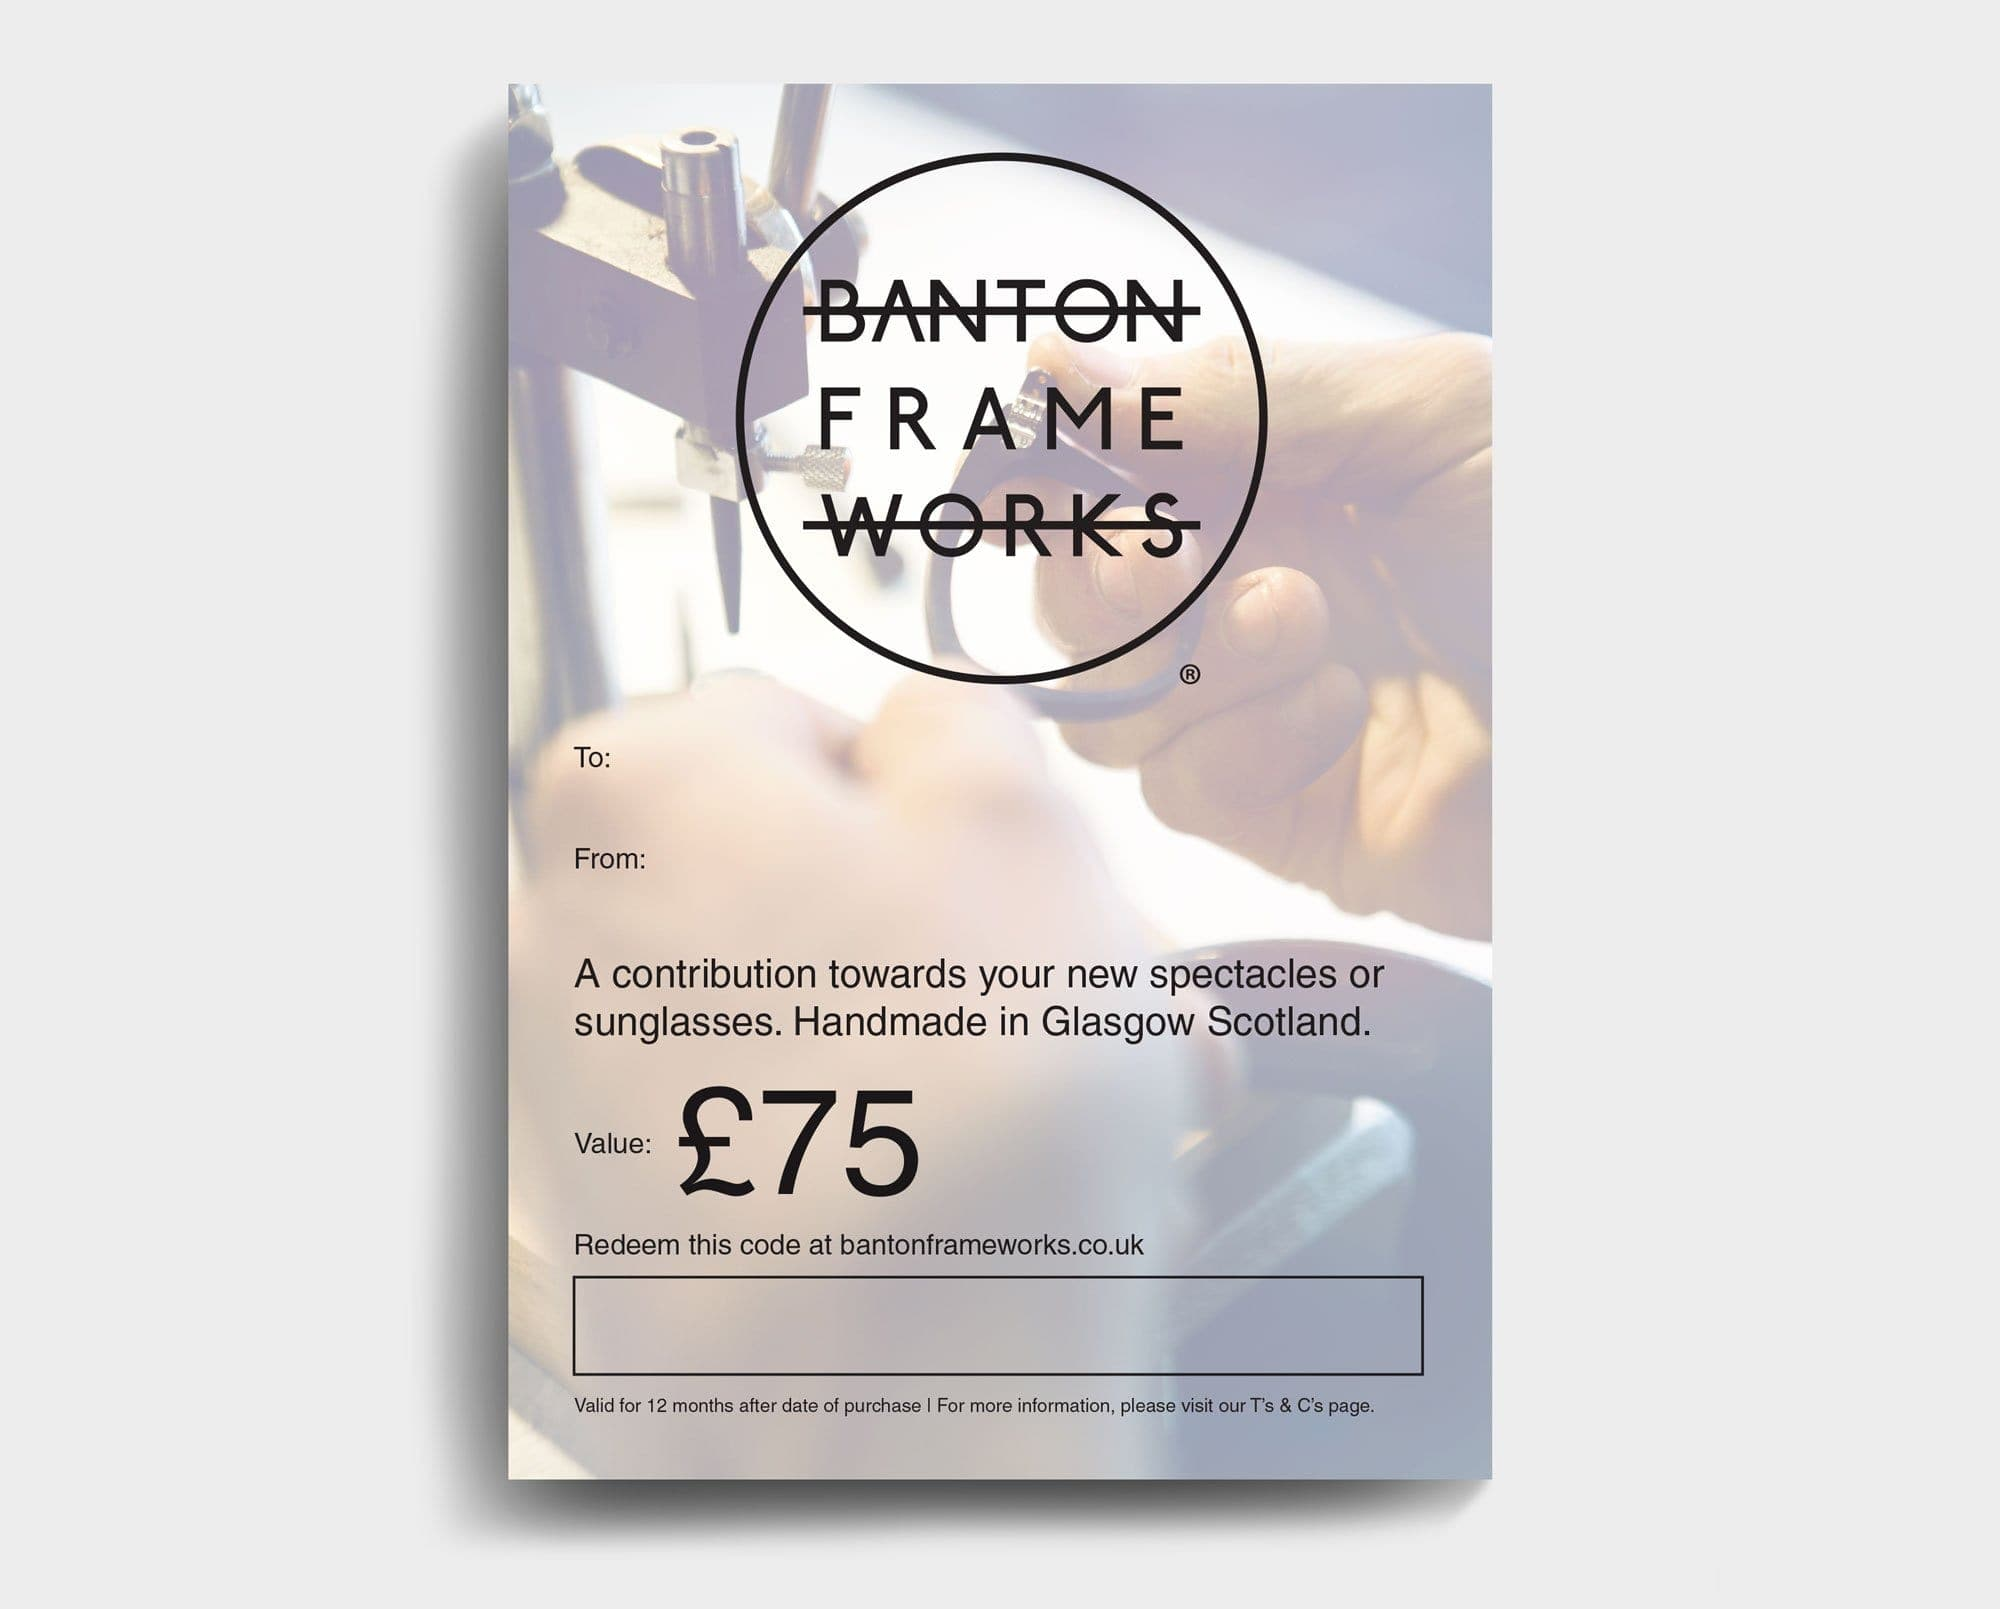 Banton Frameworks Gift Card worth 75 GBP